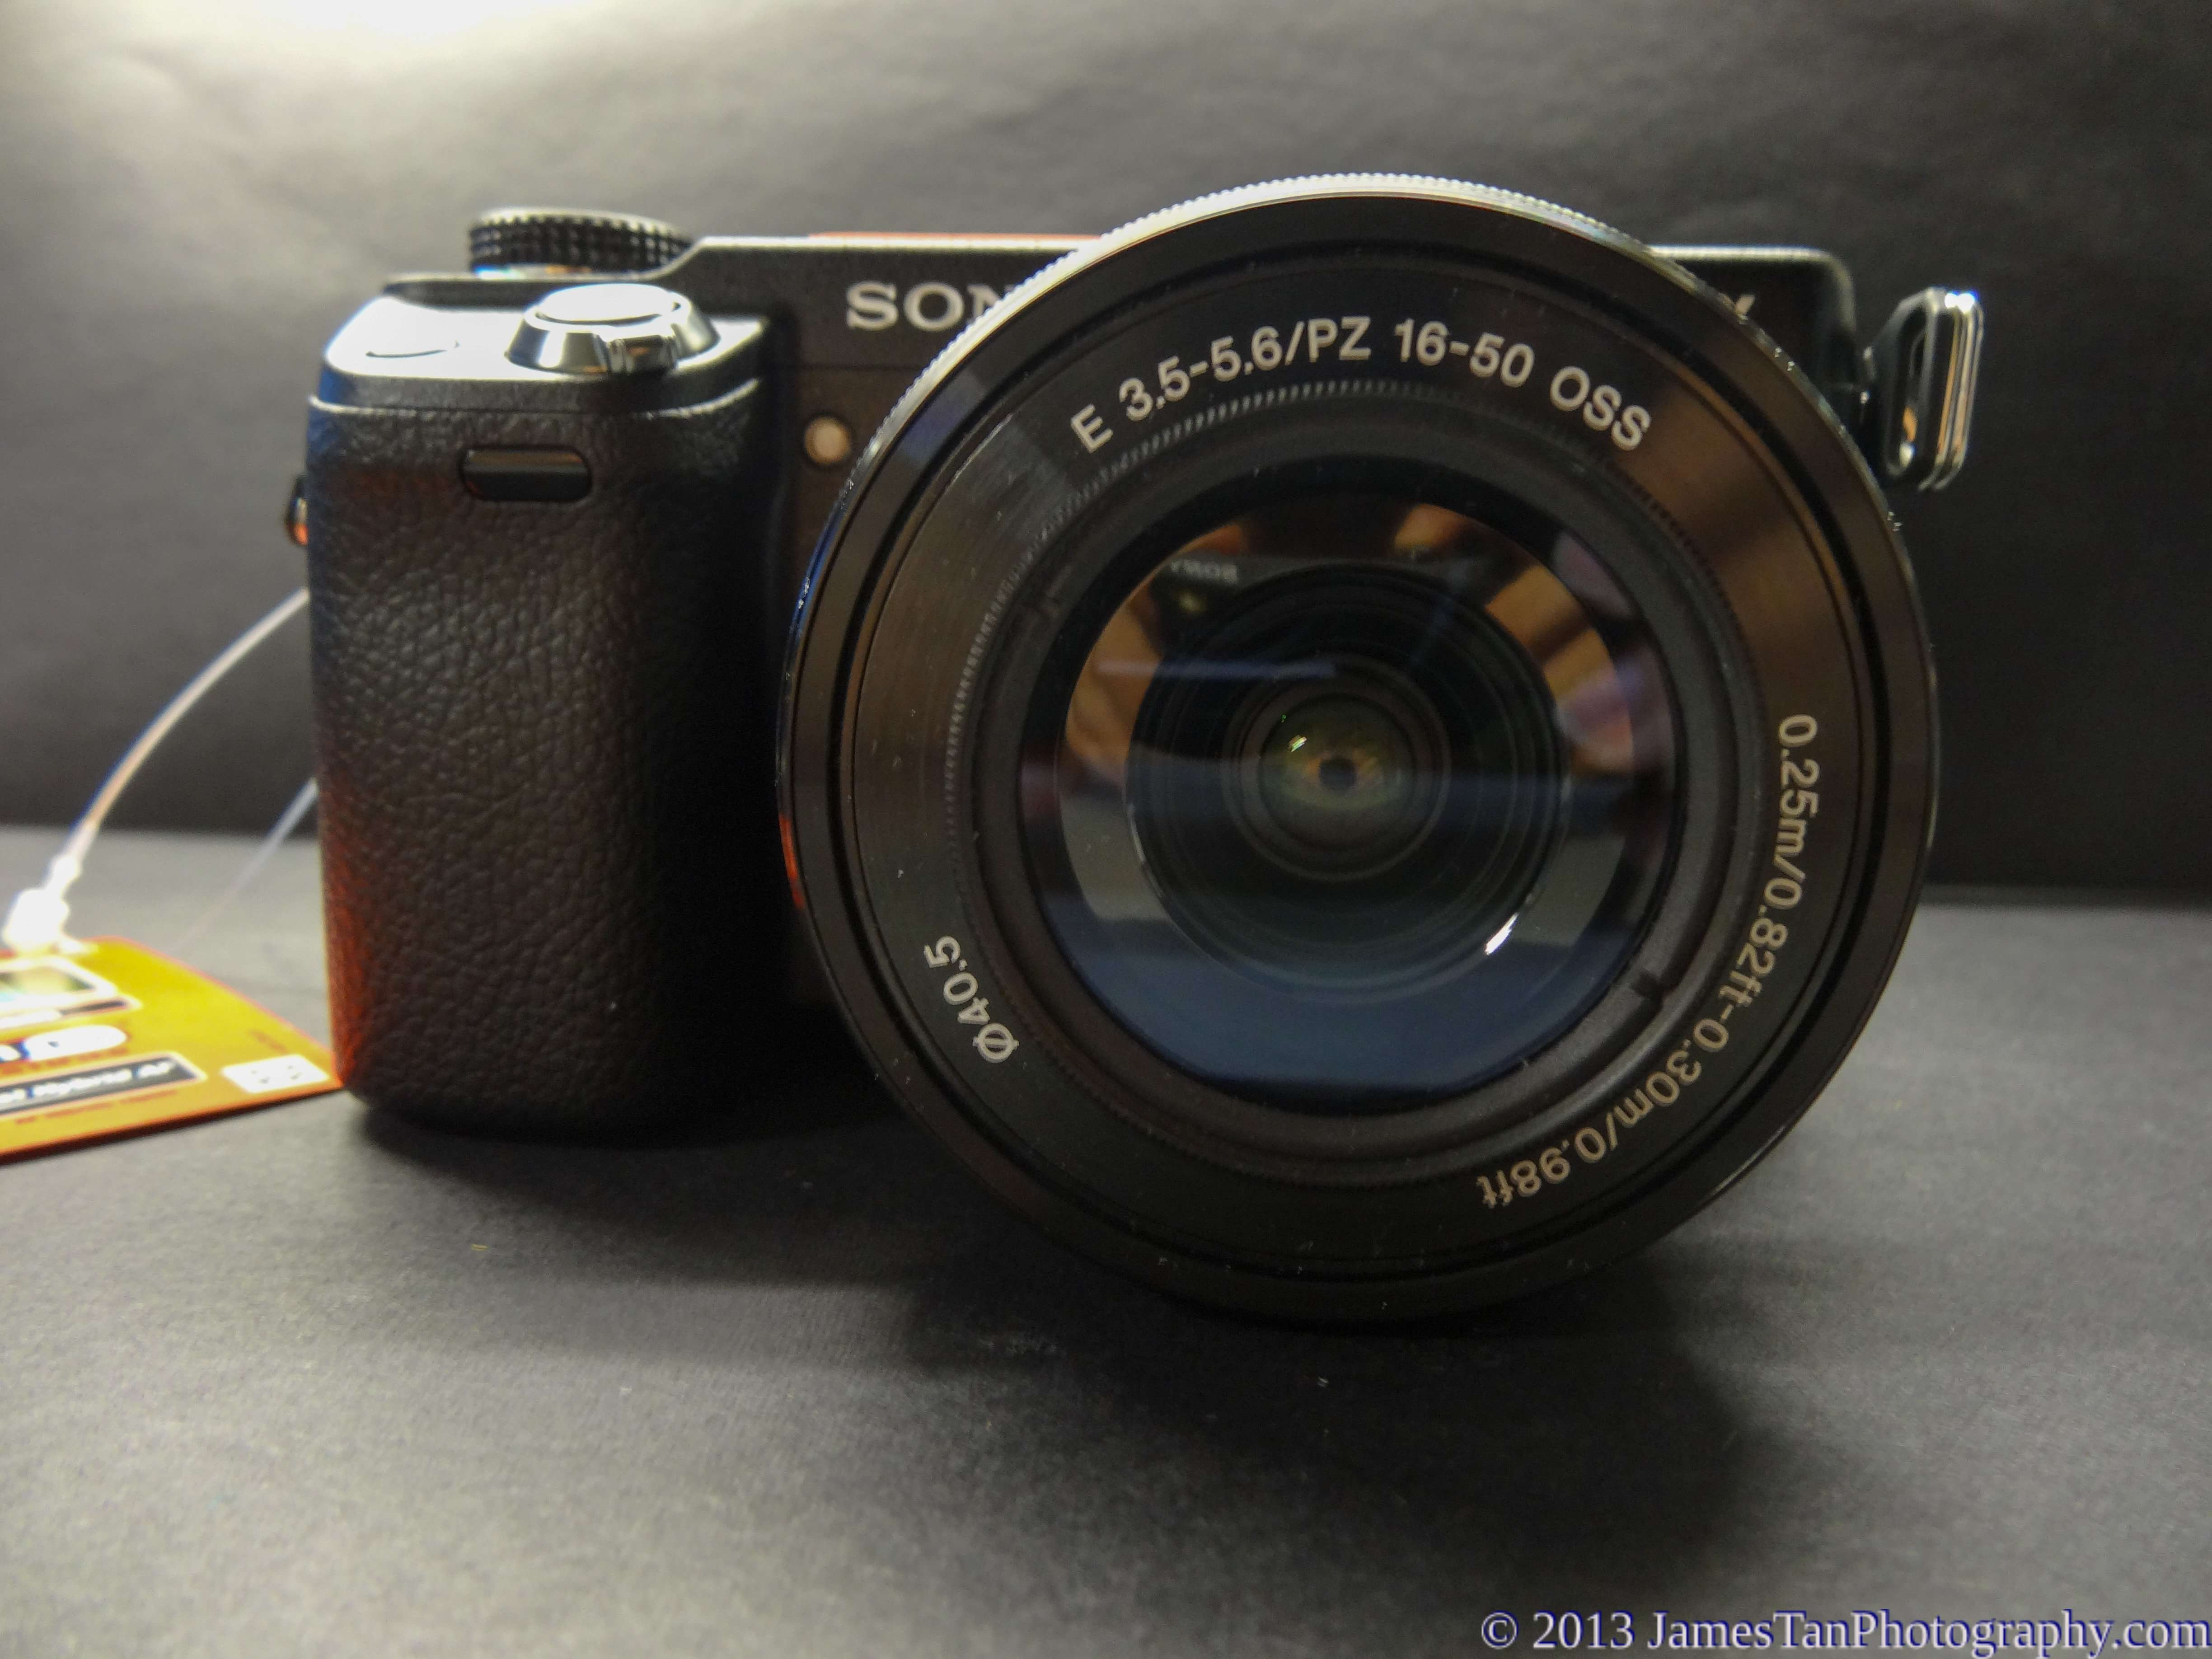 Sony Alpha NEX-6 Front View - with SELP1650 kit lens attached